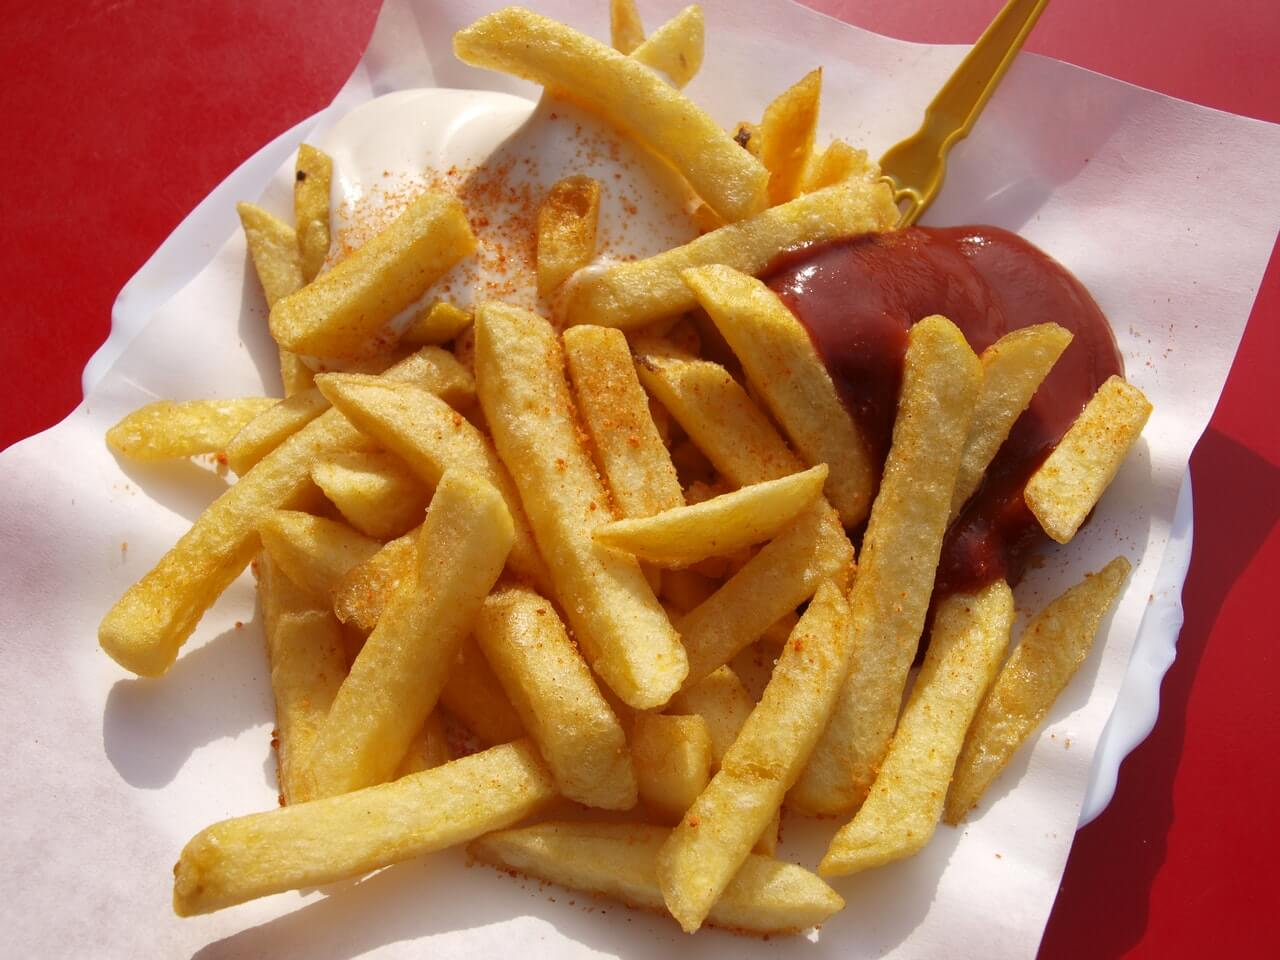 Fries with ketchup on the side